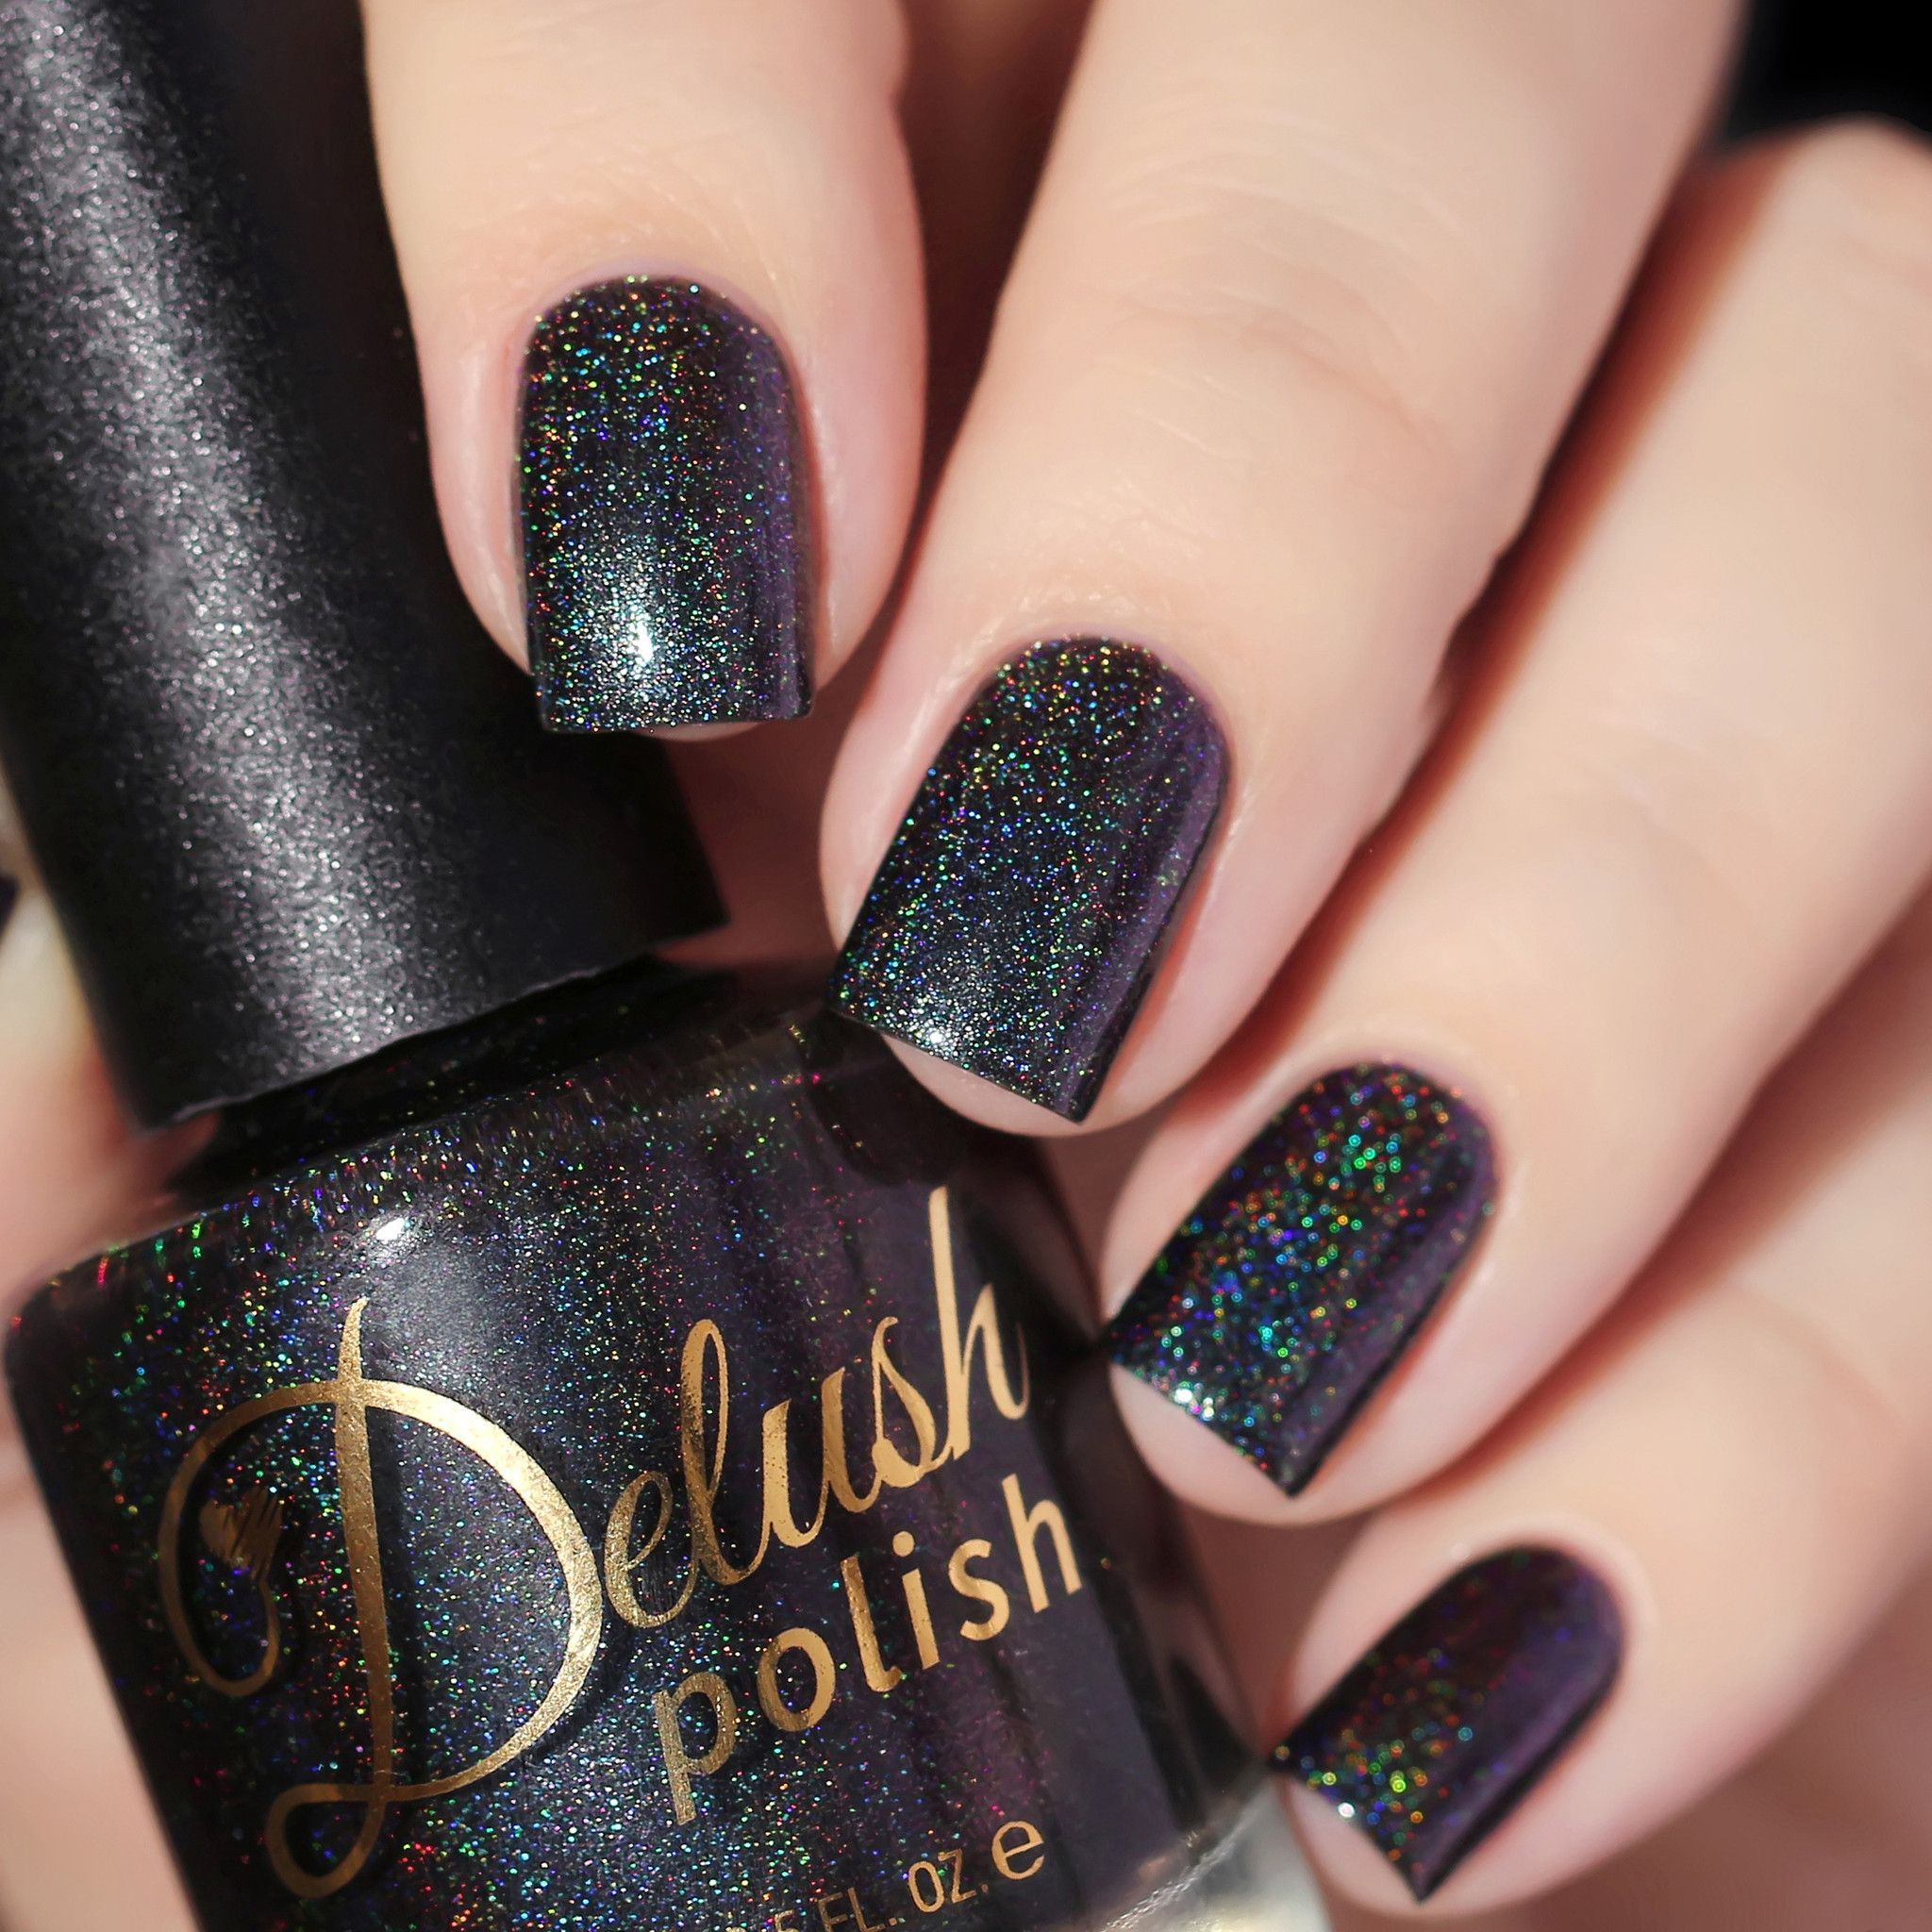 Warden of Darkness | Swatch, Darkness and Holographic nail polish